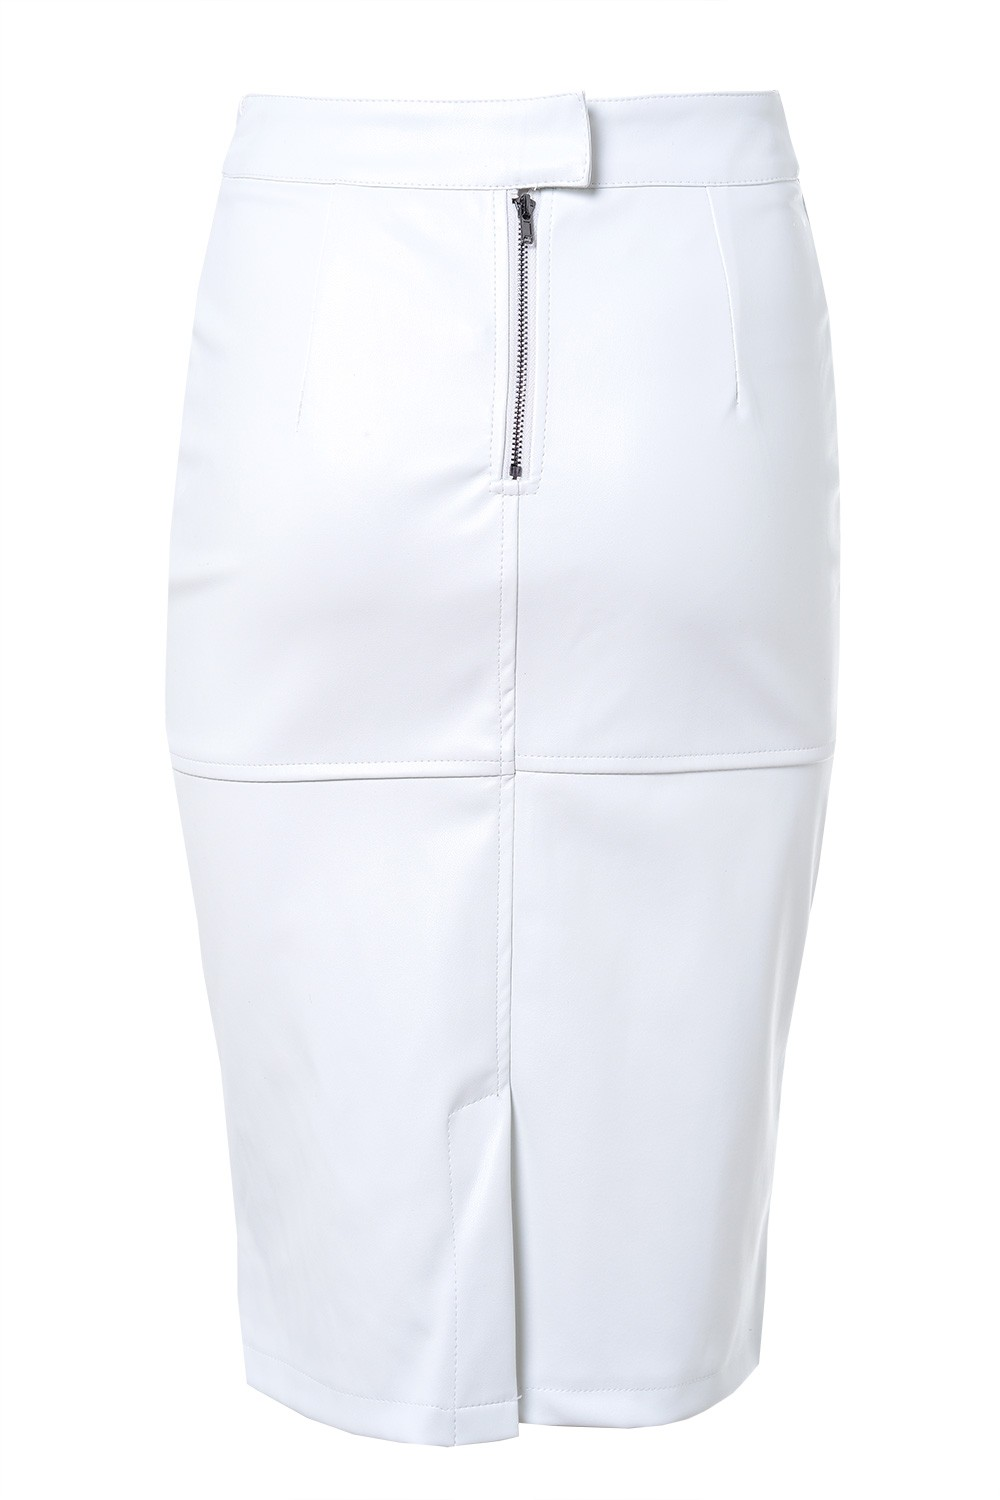 pixie leather look pencil skirt in white